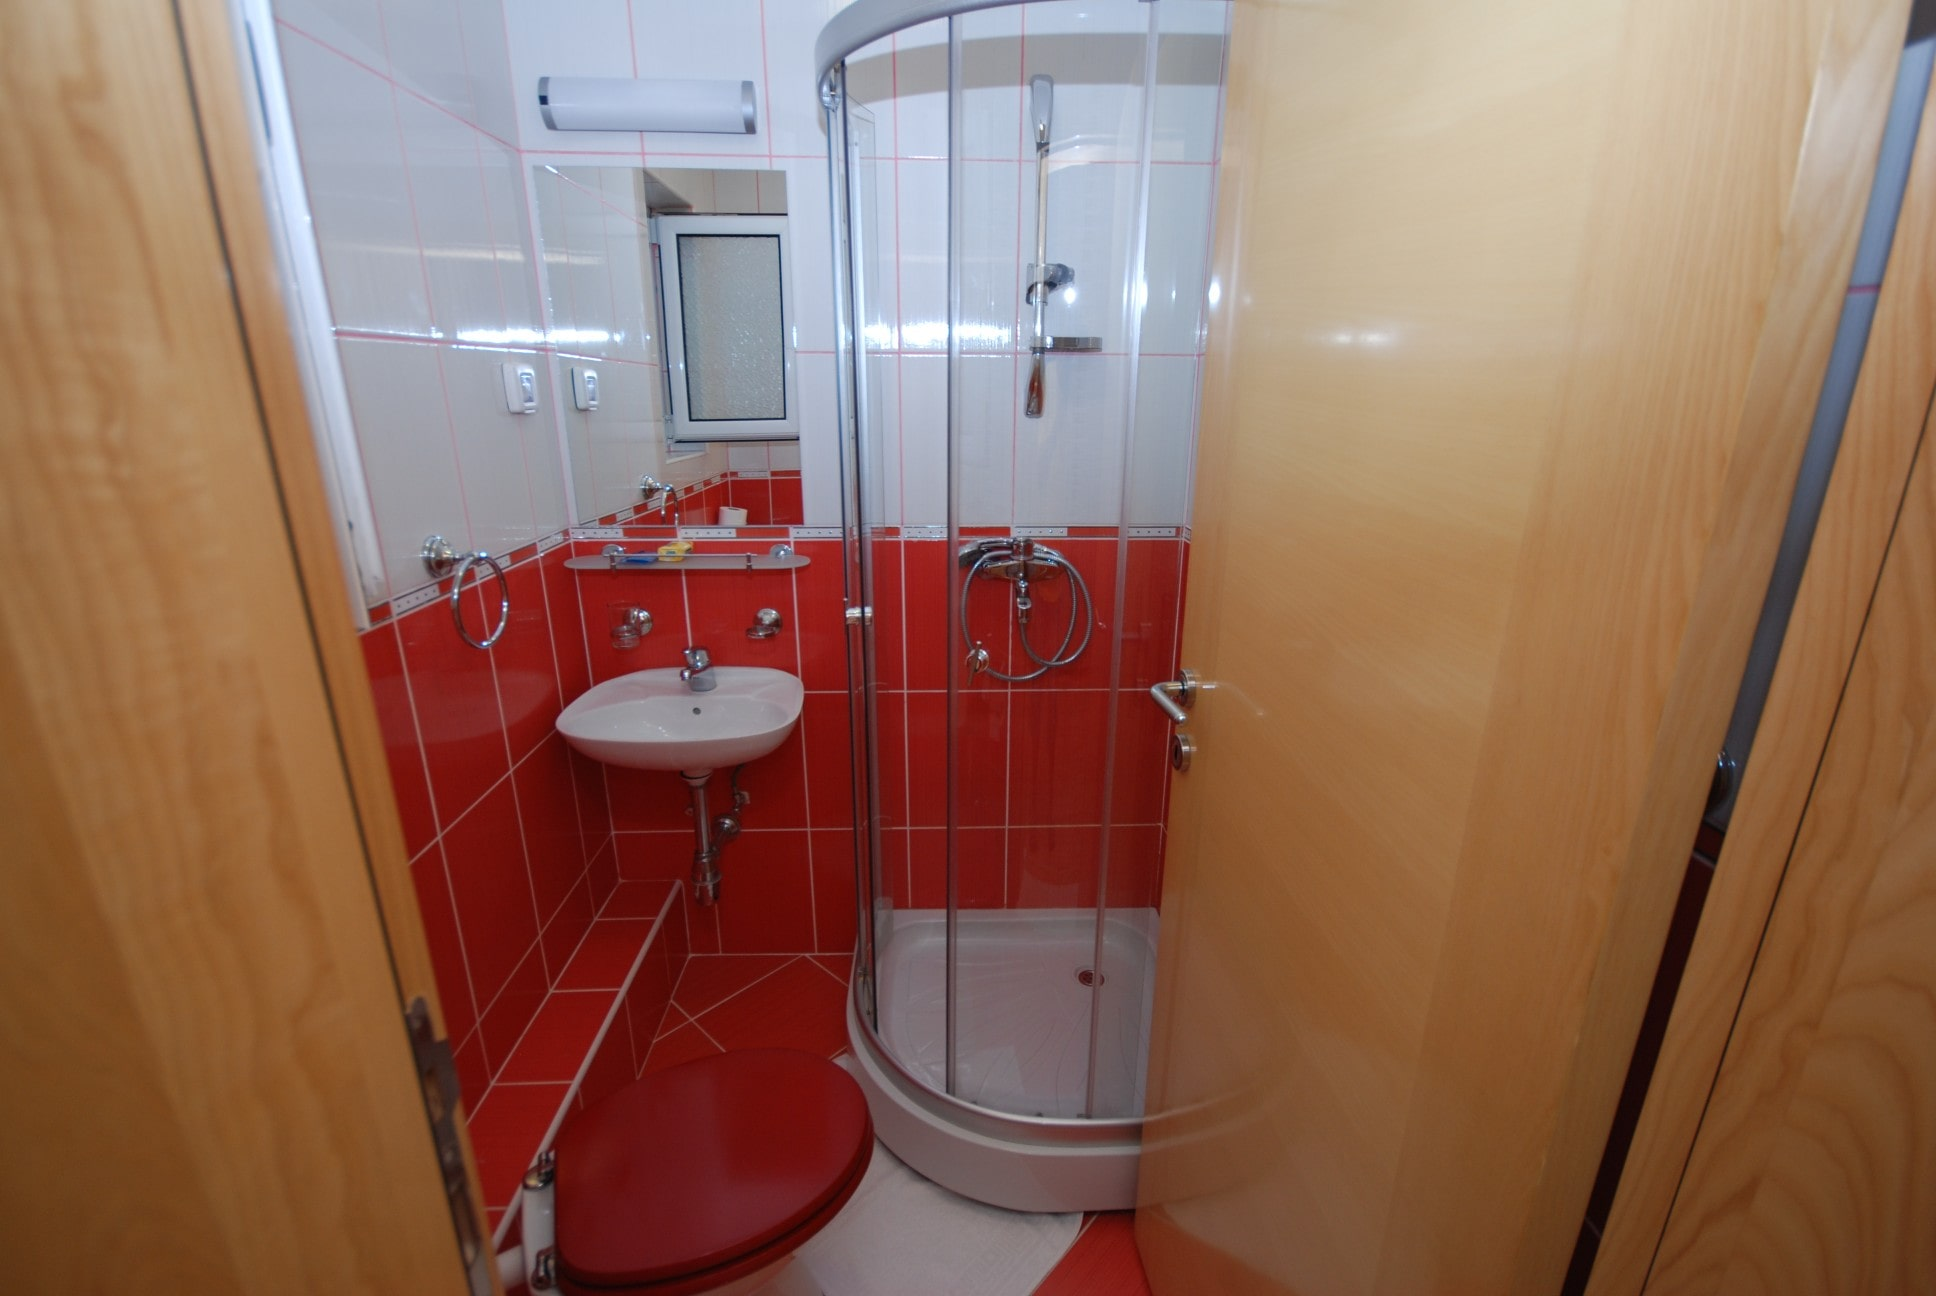 Red apartment bathrooom Springs apartments Montenegro